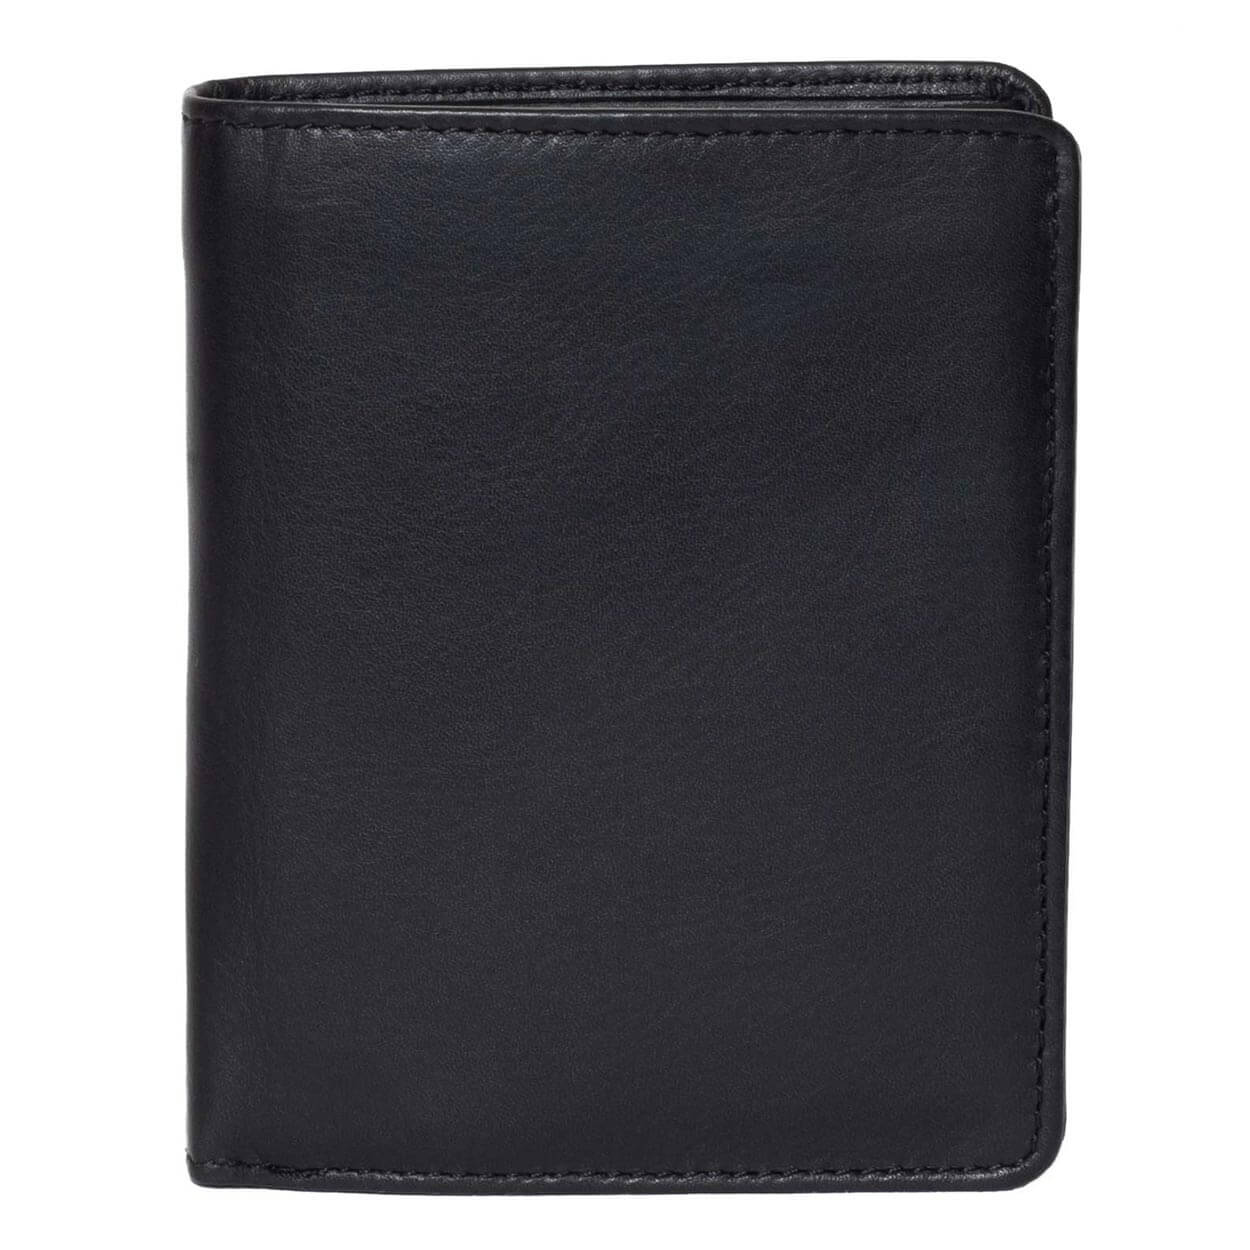 DiLoro Men's Vertical Leather Bifold Flip ID Zip Coin Wallet Black with RFID Protection  - Front View